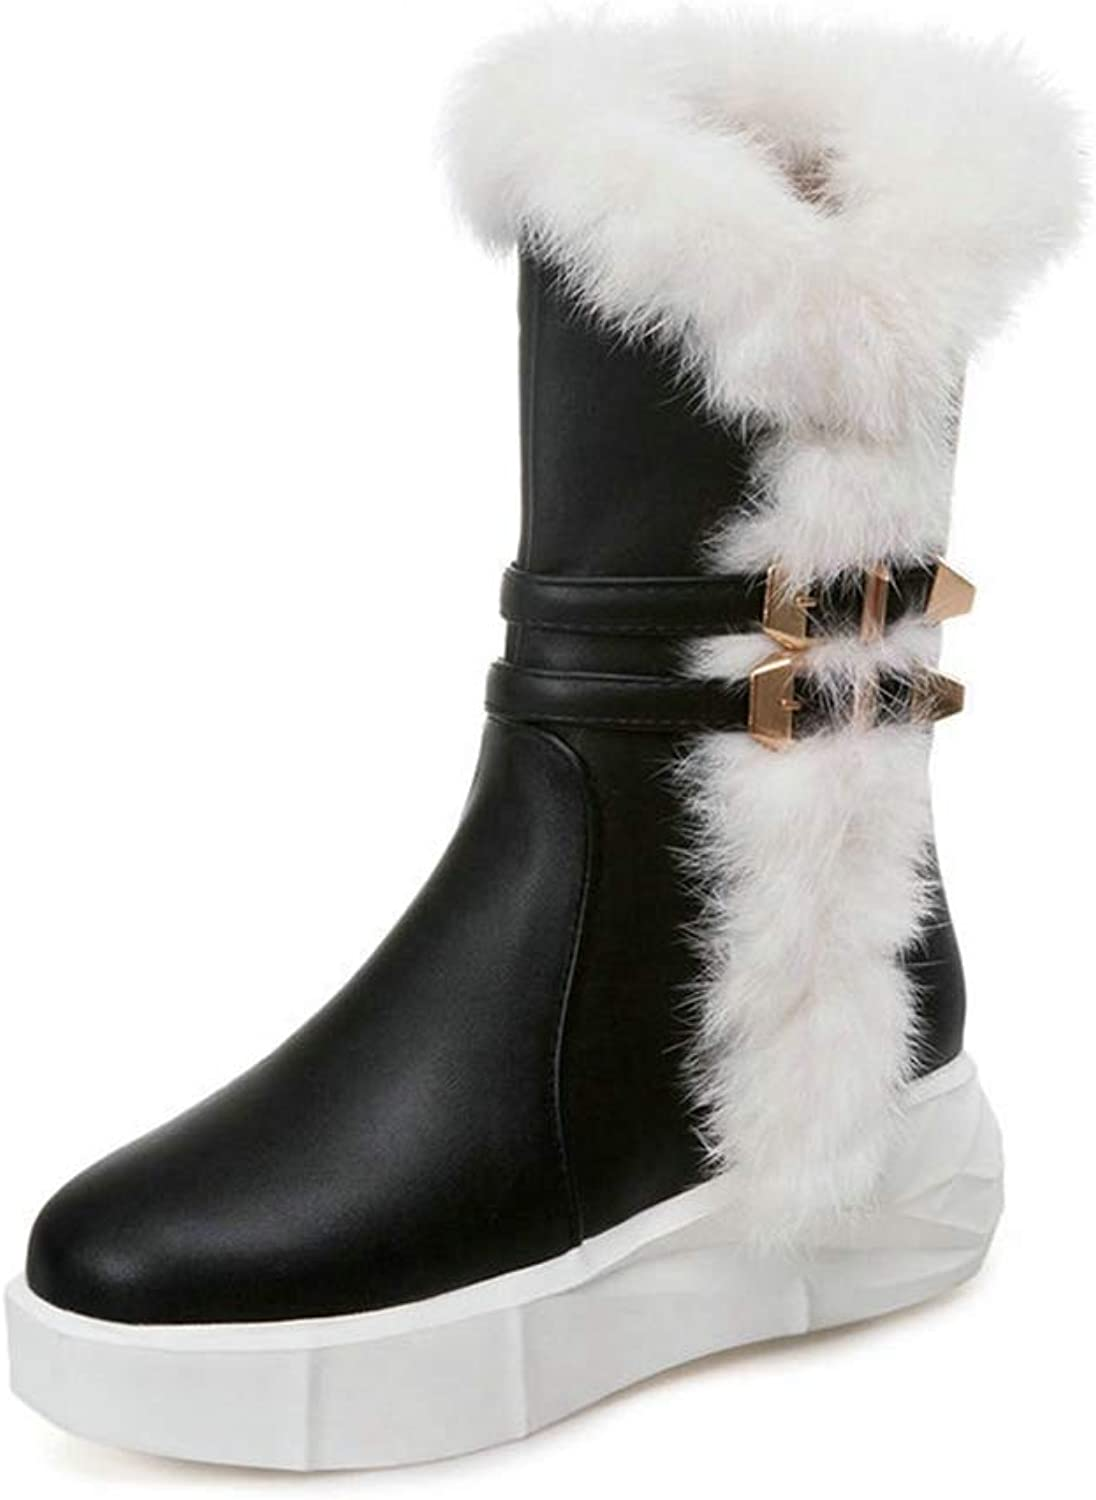 T-JULY Women's Winter Warm Plush Mid Calf Snow Boots Platform Side Zipper Comfortable Flat shoes White Black Pink